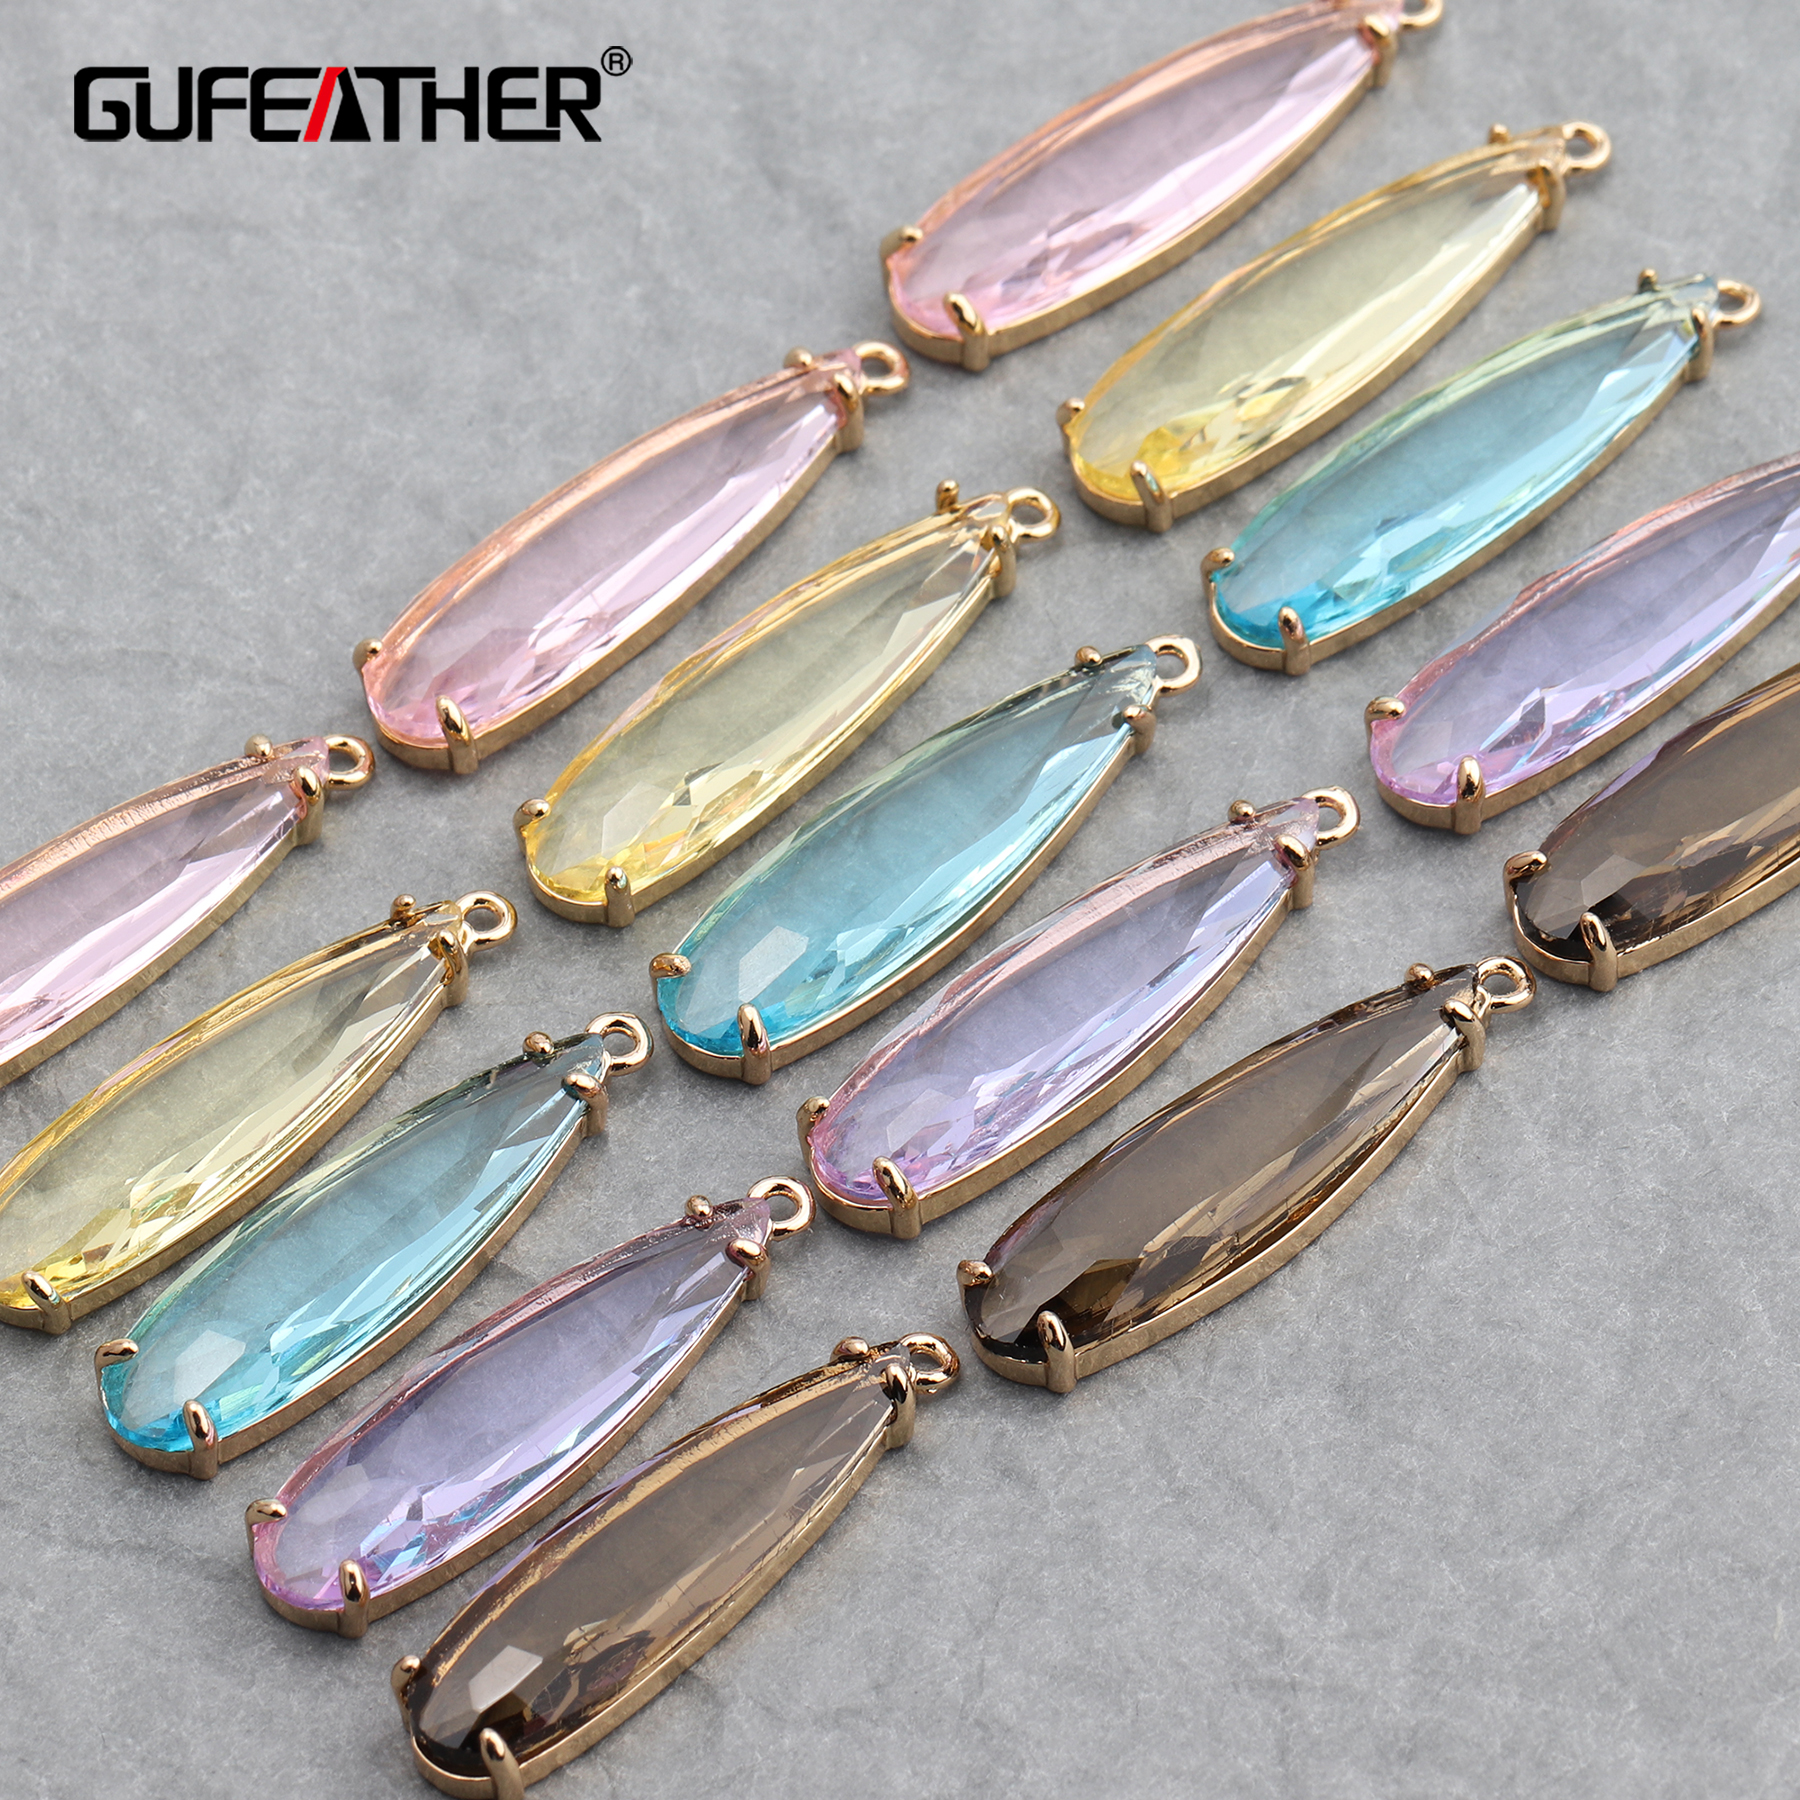 GUFEATHER M628,jewelry Accessories,hand Made,diy Glass Pendant,jump Ring,jewelry Findings,jewelry Making,diy Earring,10pcs/lot